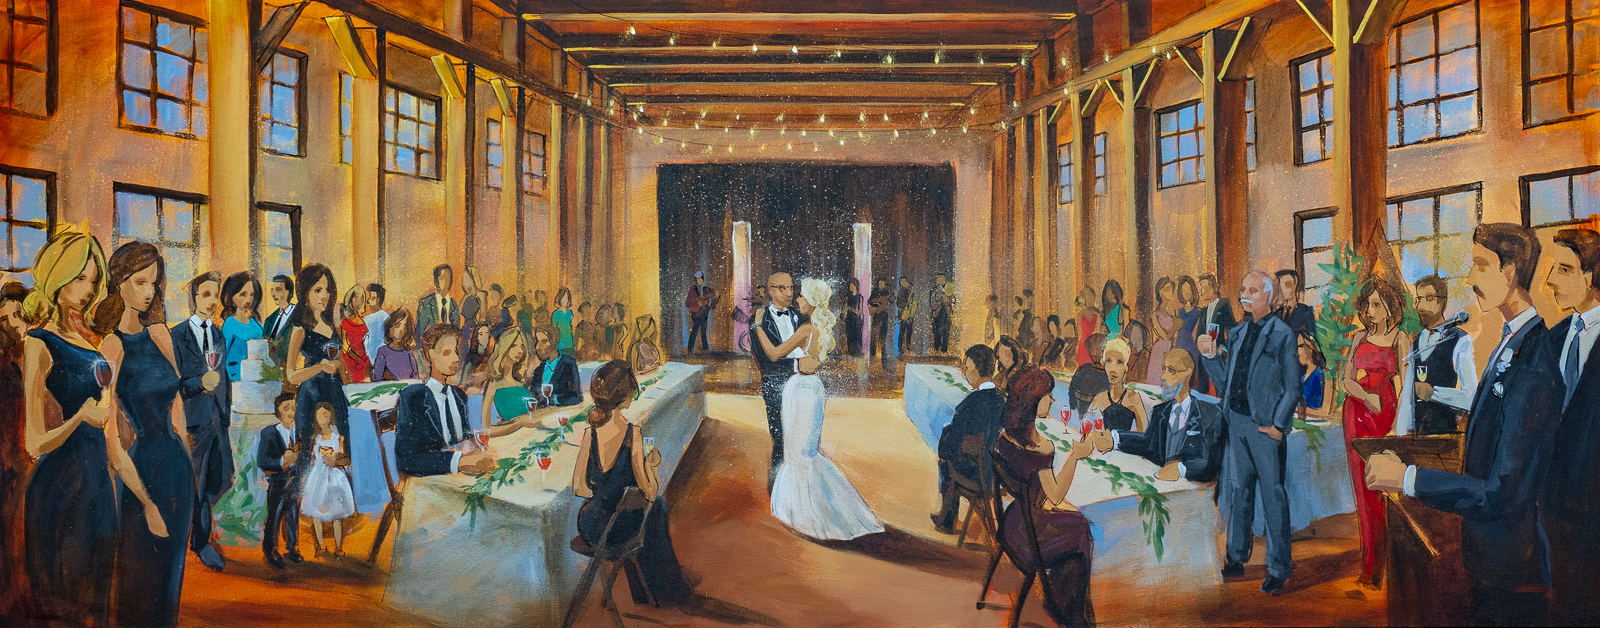 wedding painting ashley and jesse.jpg